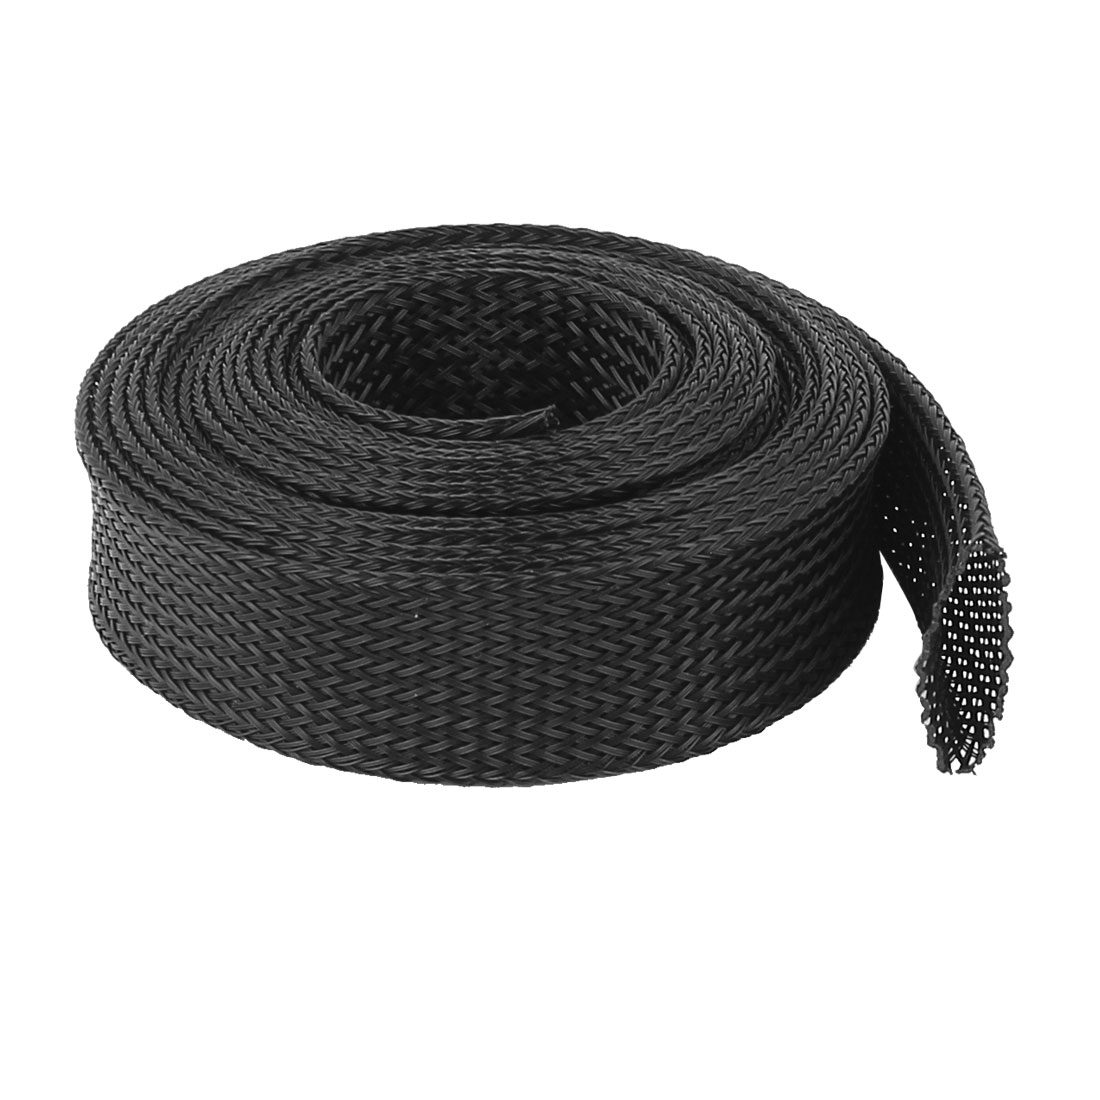 25mm PET Cable Wire Wrap Expandable Braided Sleeving 3 Meter